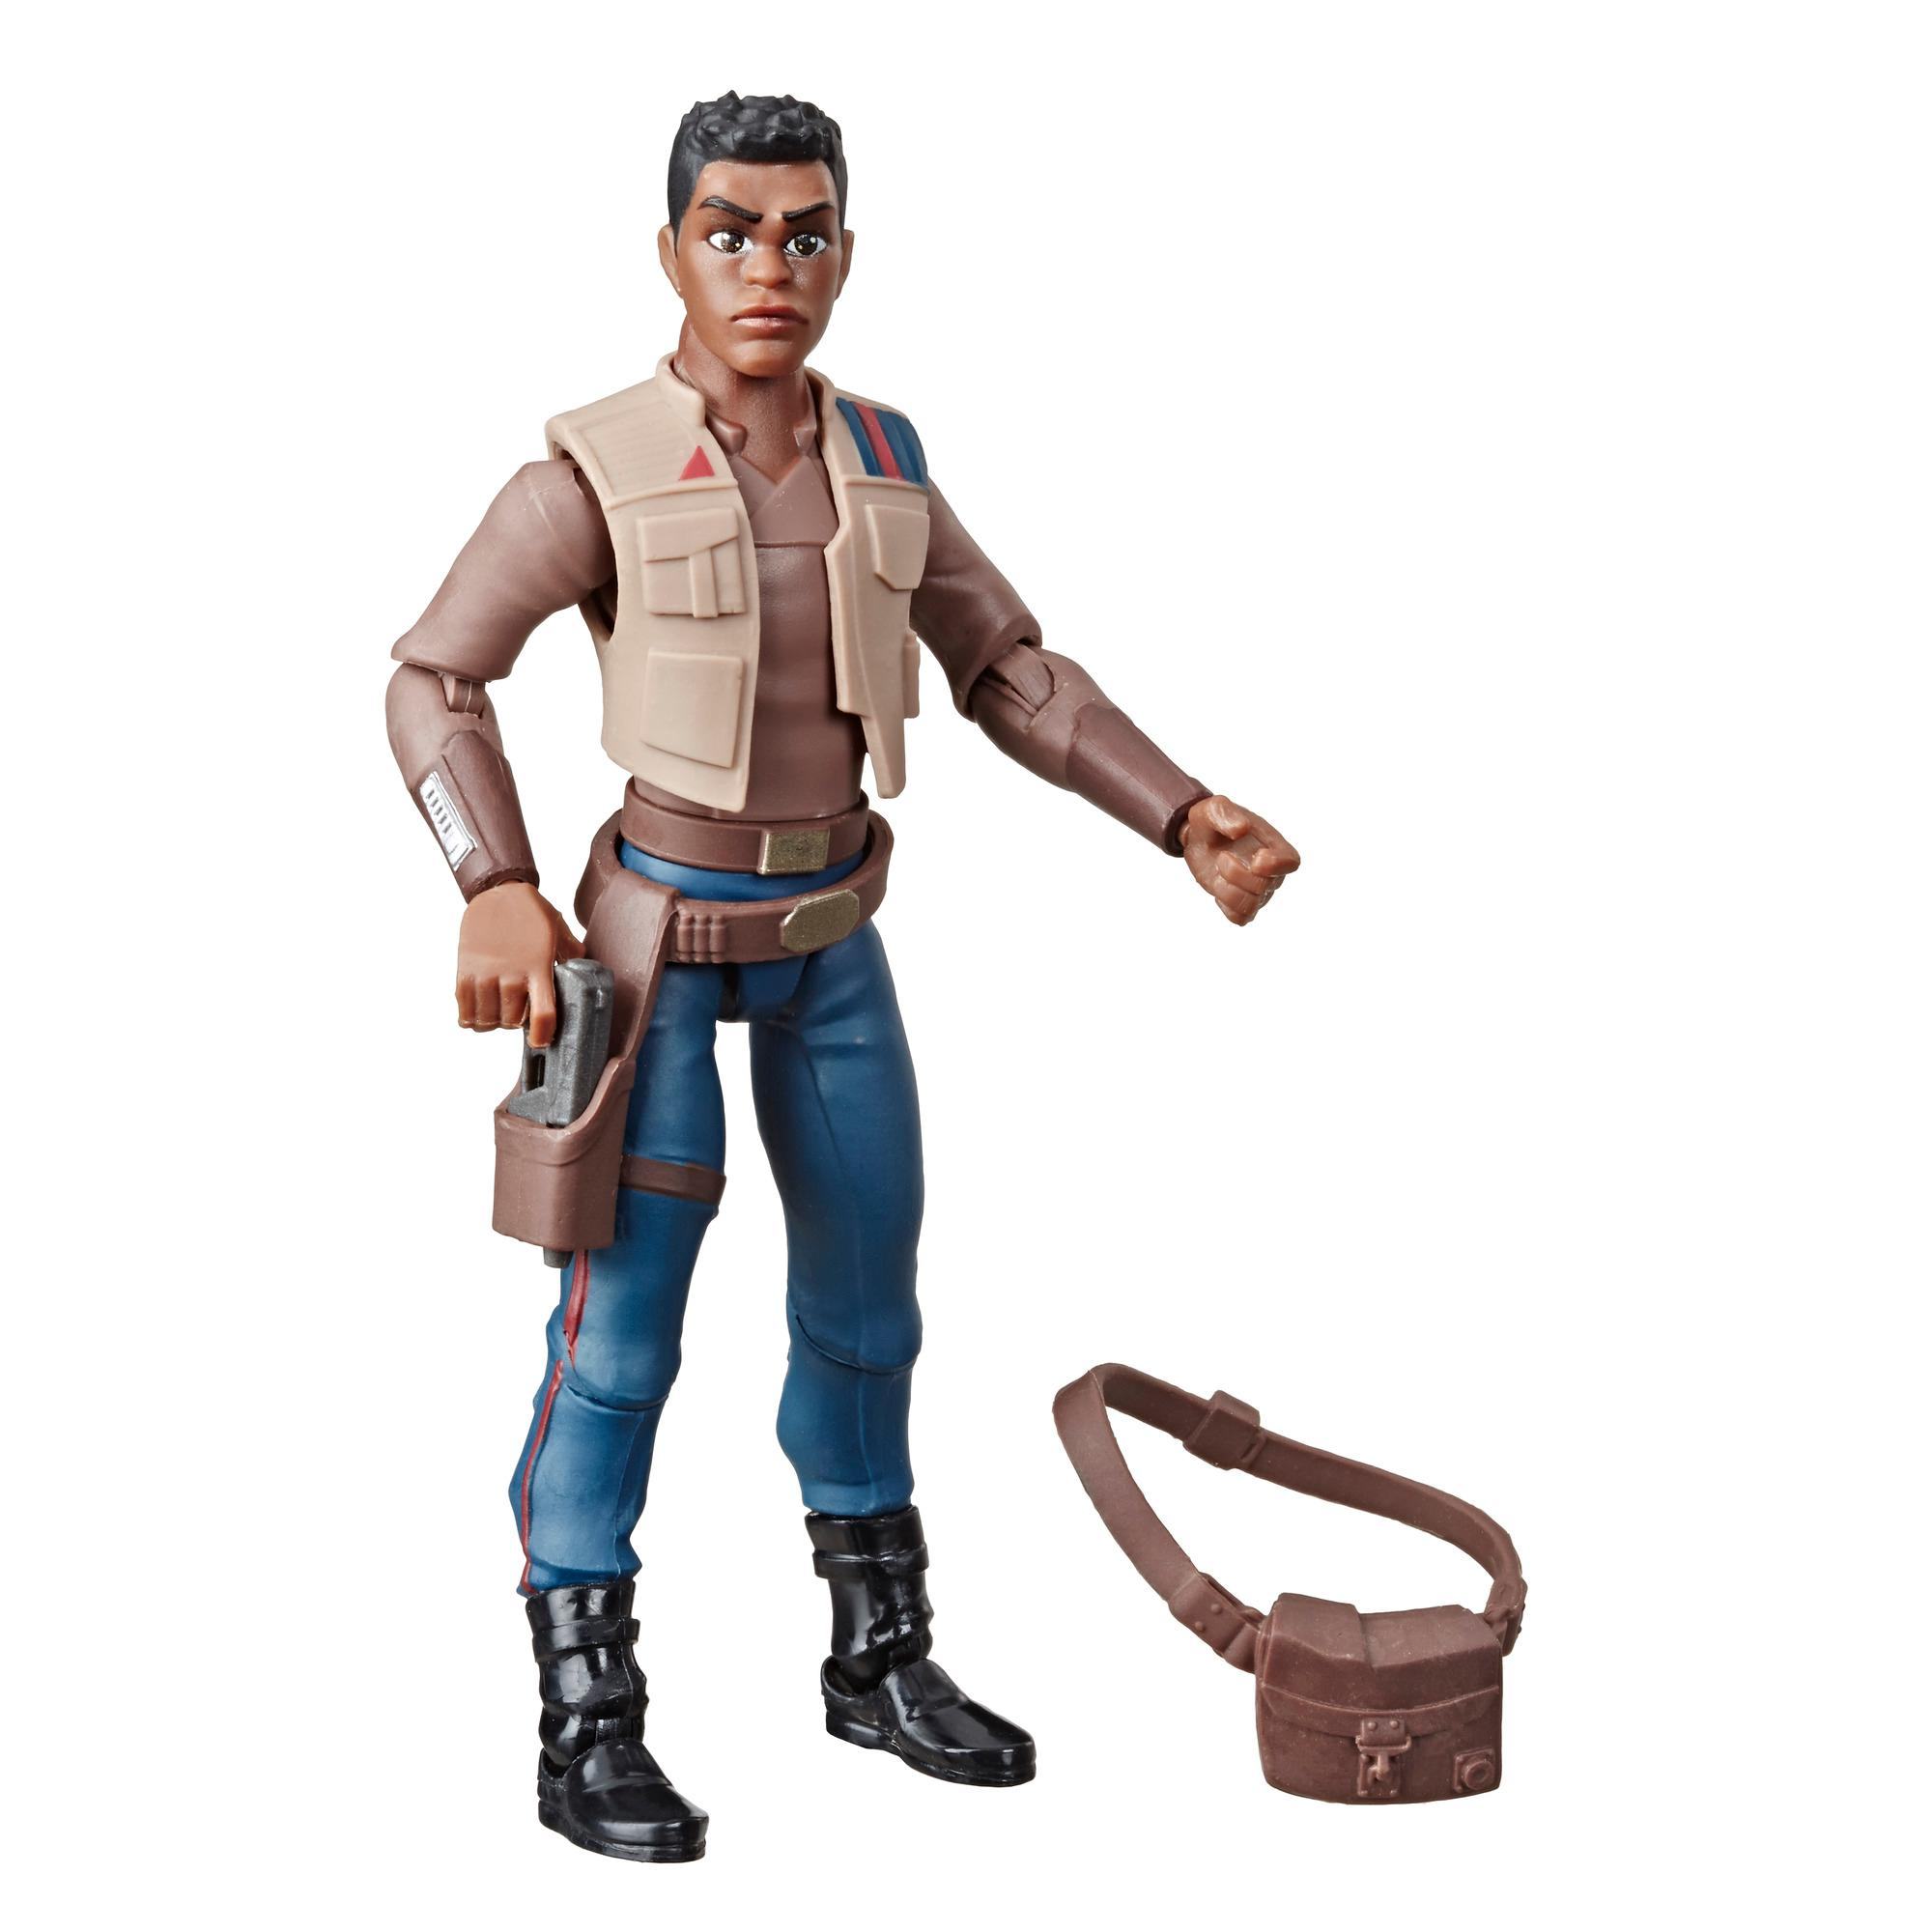 Star Wars Galaxy of Adventures Finn 5-Inch-Scale Action Figure Toy